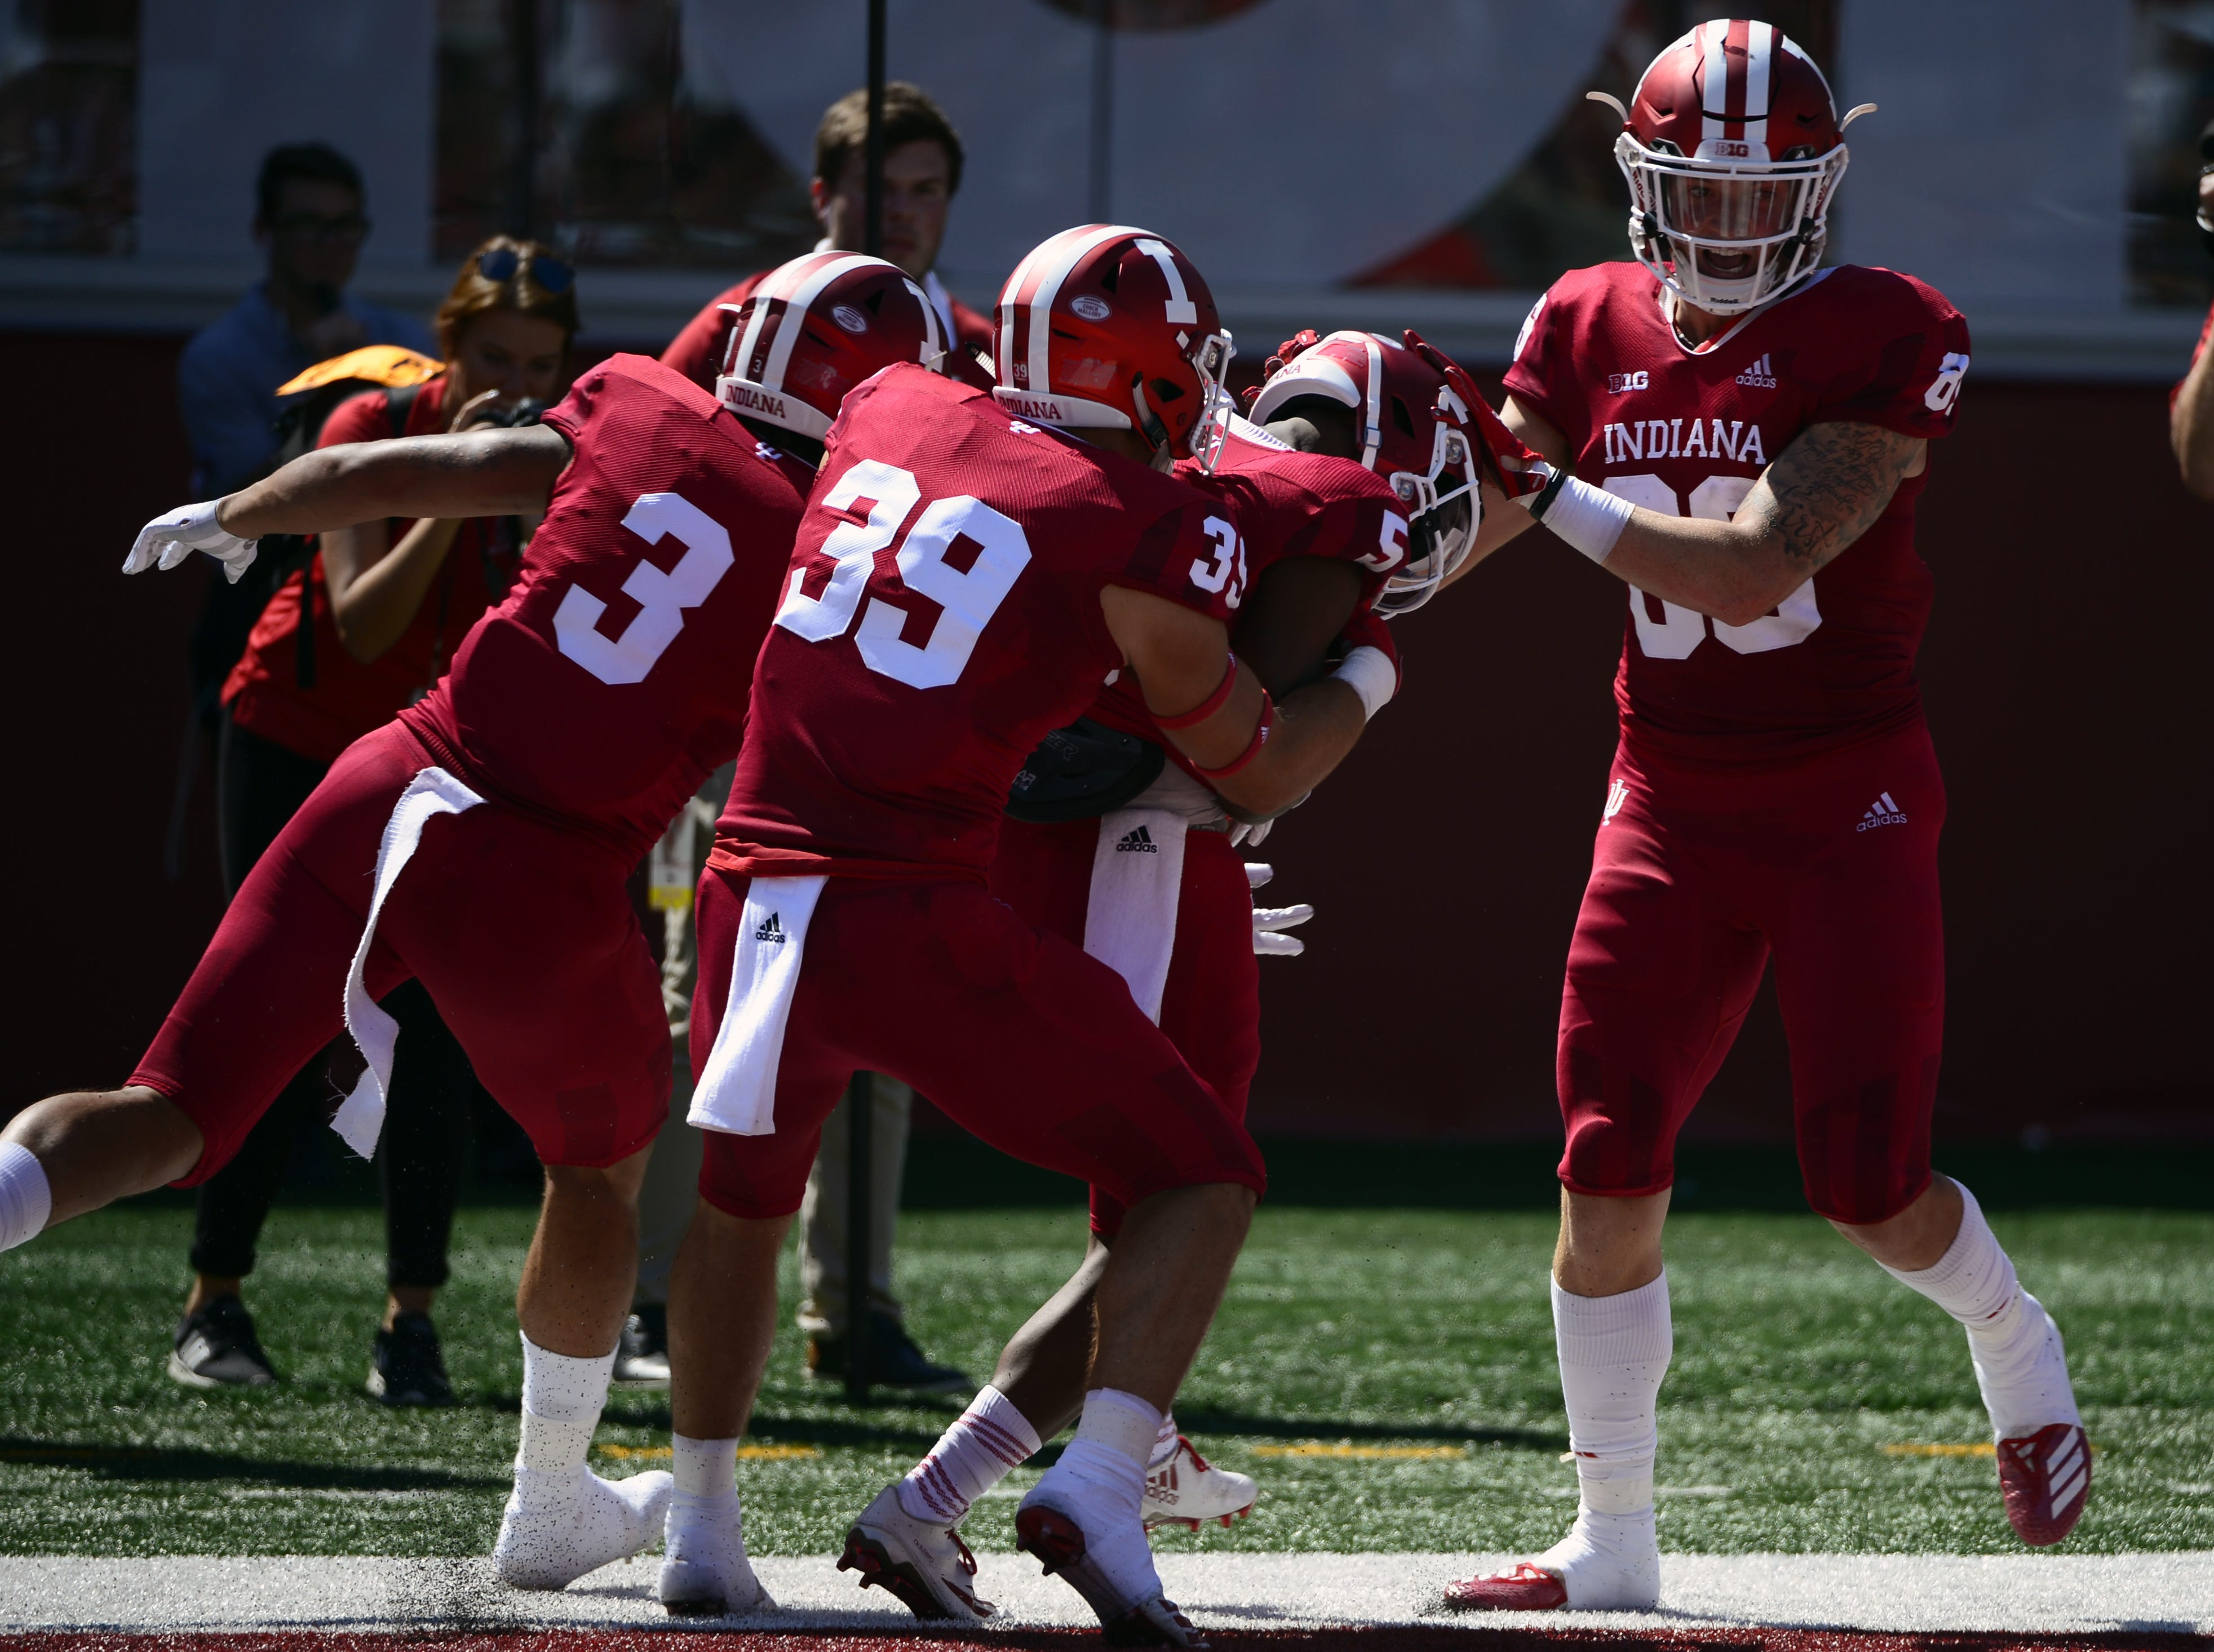 The Indiana Hoosiers celebrate after J-Shun Harris II (5) scores a touchdown during the game against Ball State at Memorial Stadium in Bloomington, Ind., on Saturday, Sept. 15, 2018.